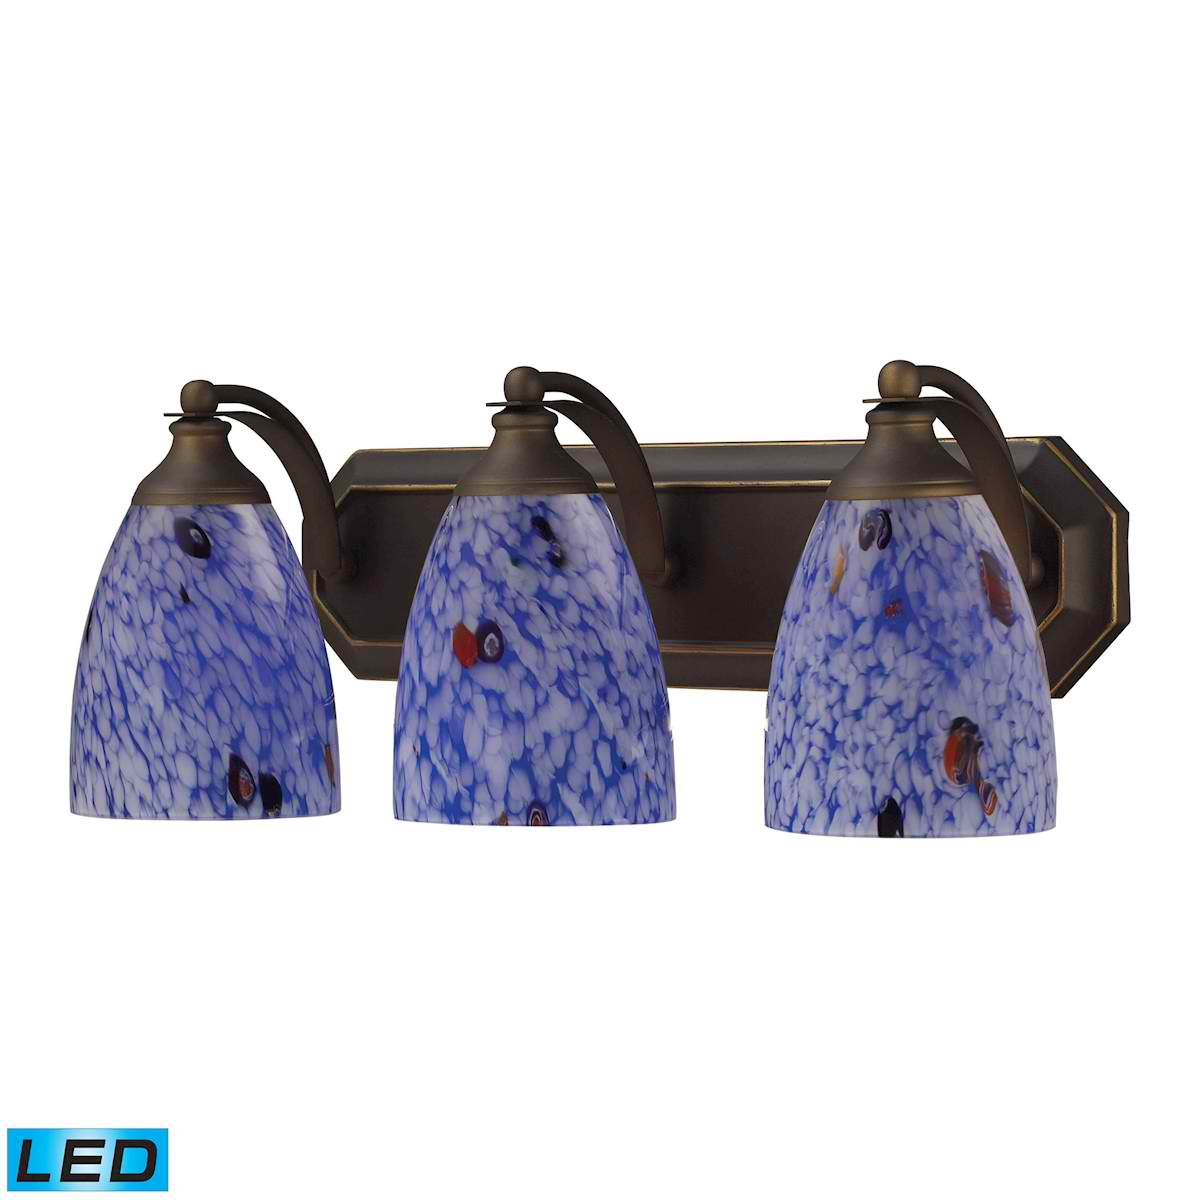 3 Light Vanity in Aged Bronze and Starburst Blue Glass - LED, 800 Lumens (2400 Lumens Total) with Full Scale